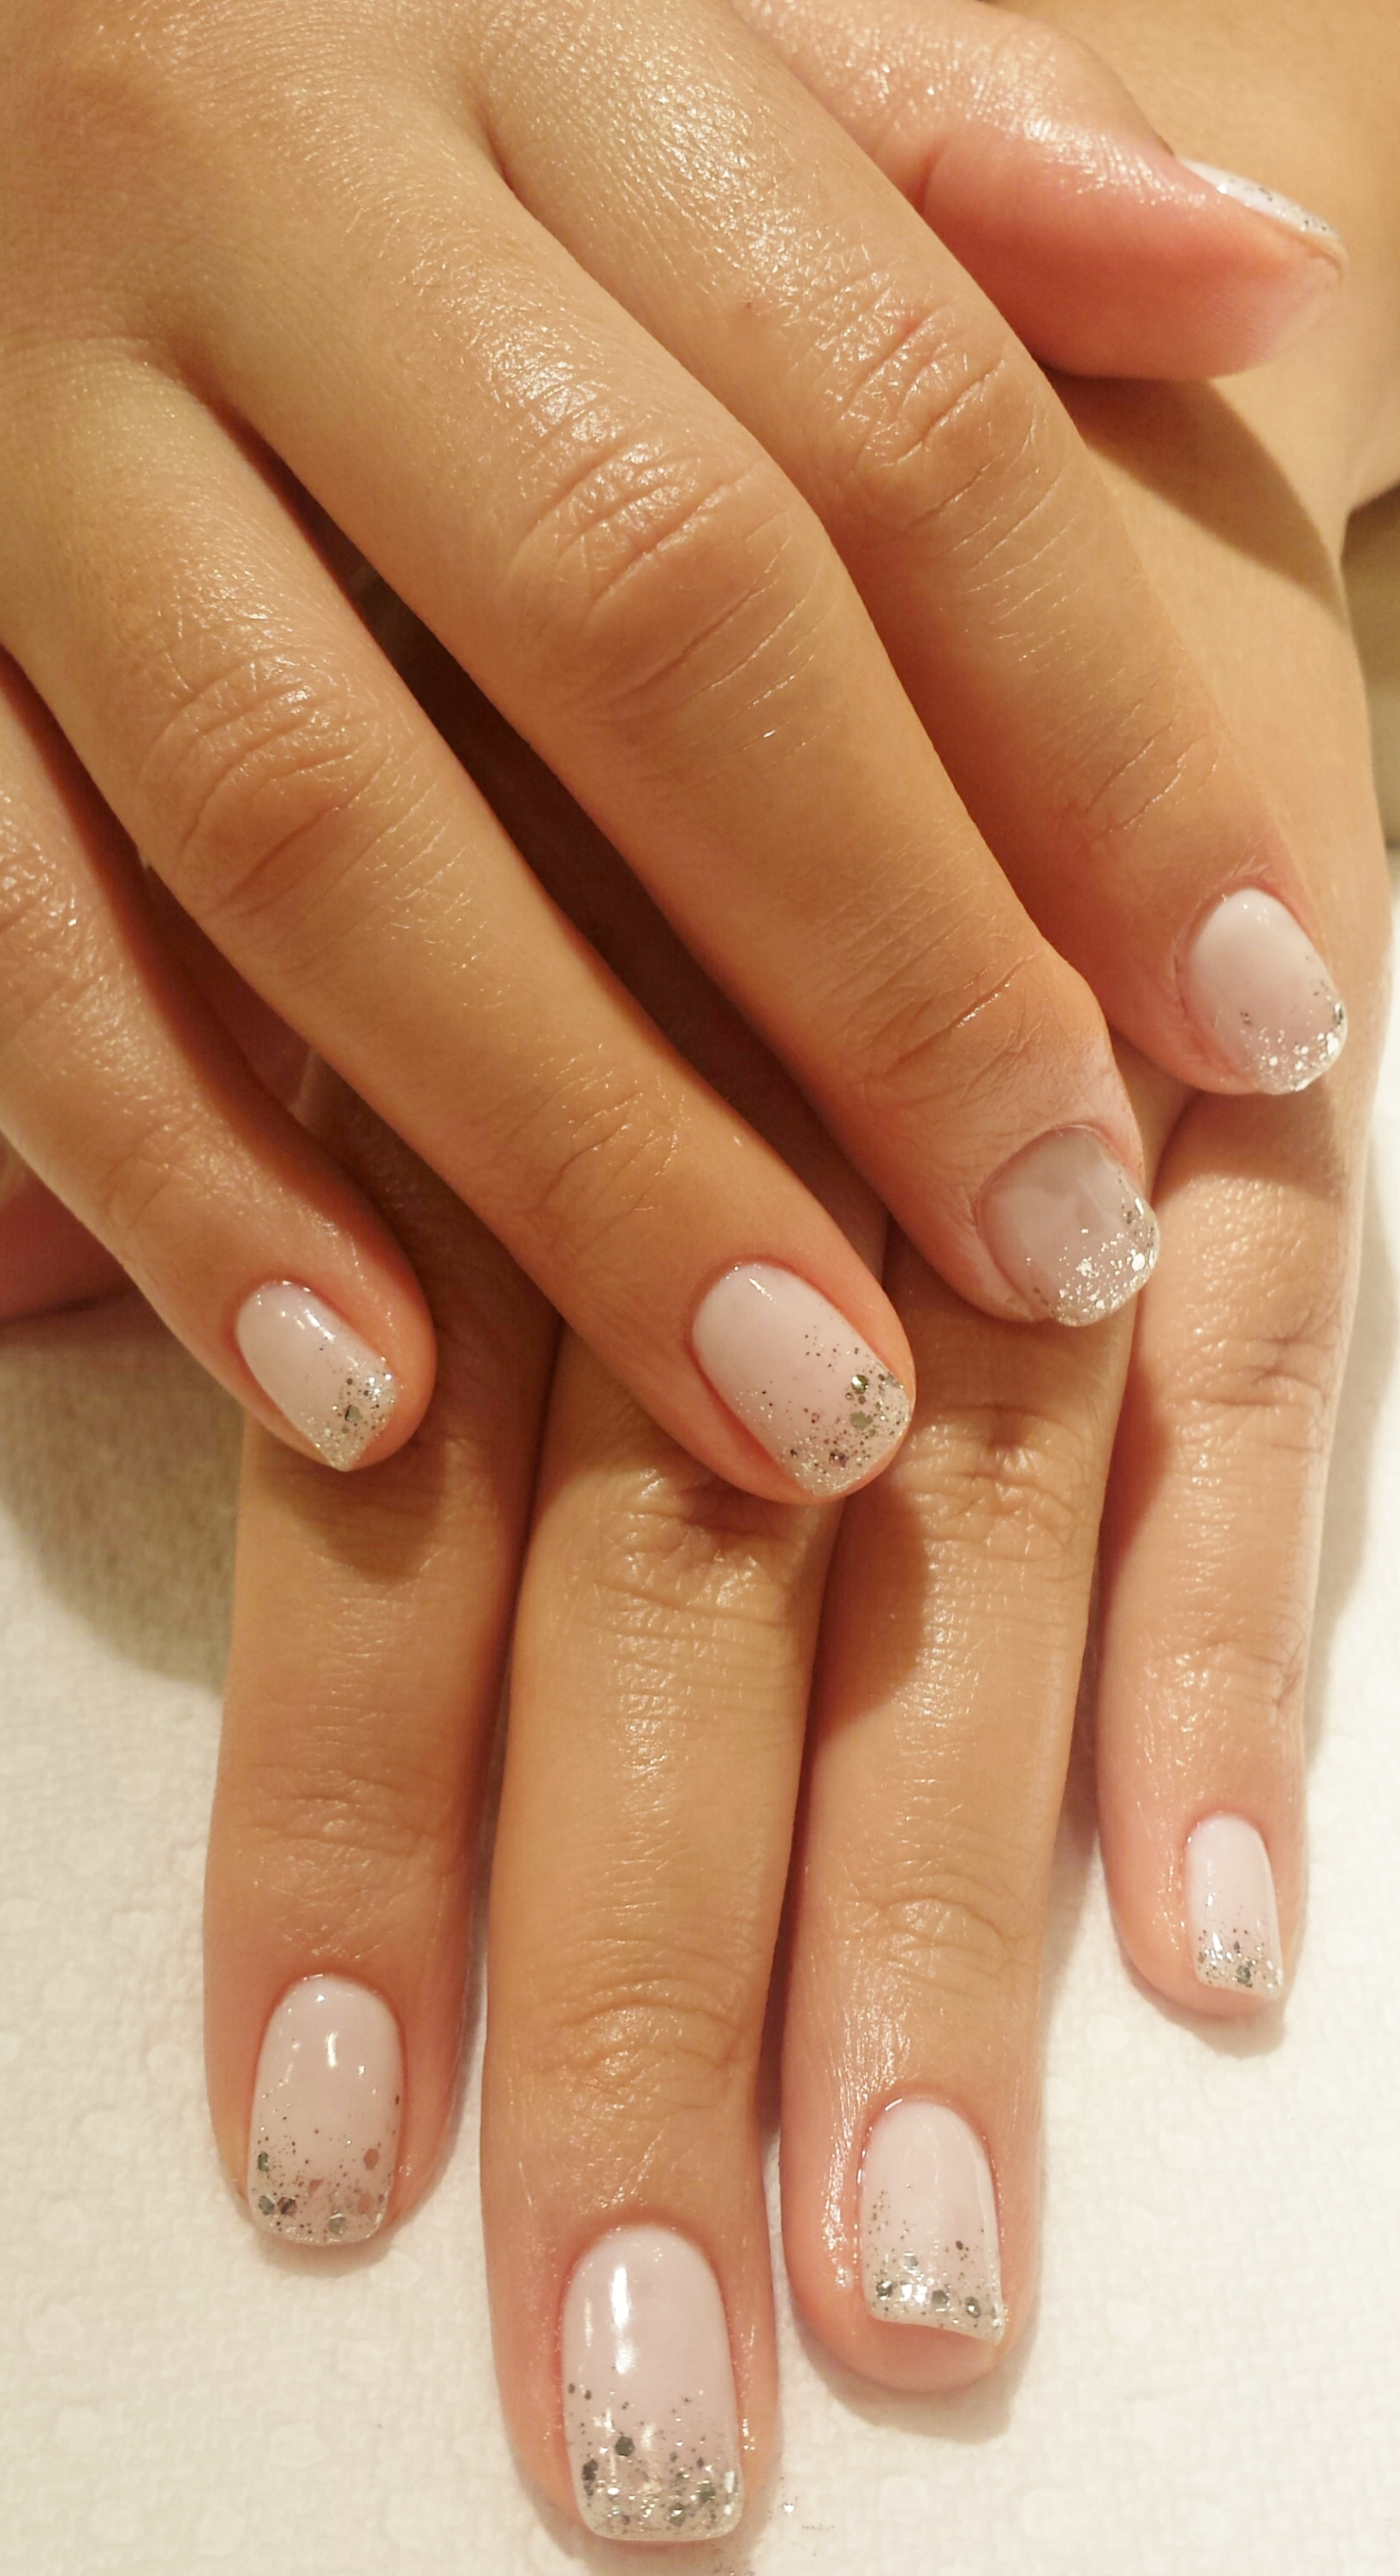 Gel manicure with glitter